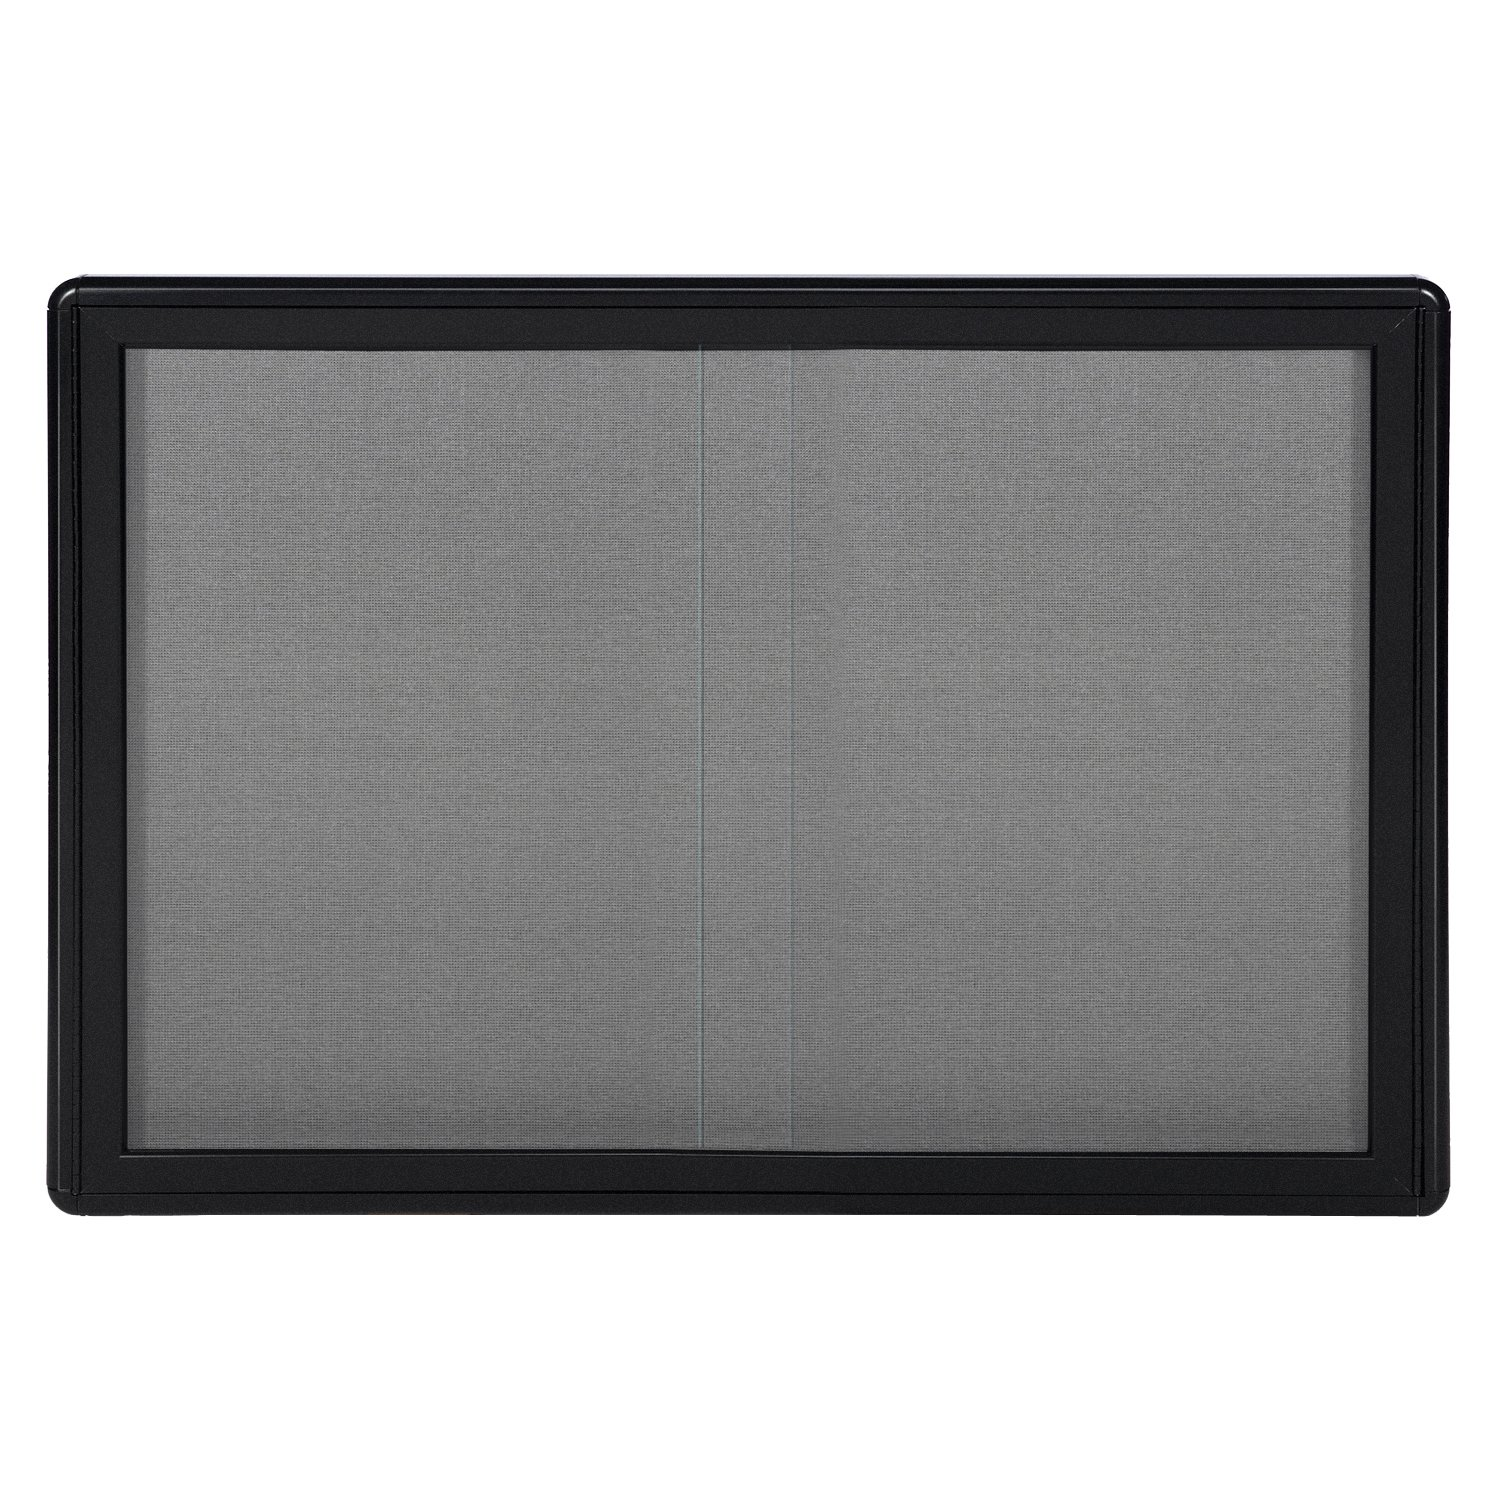 Ghent 34''x47'' 2-Sliding Doors Ovation Gray Fabric Bulletin Board, Black Frame, Made in the USA